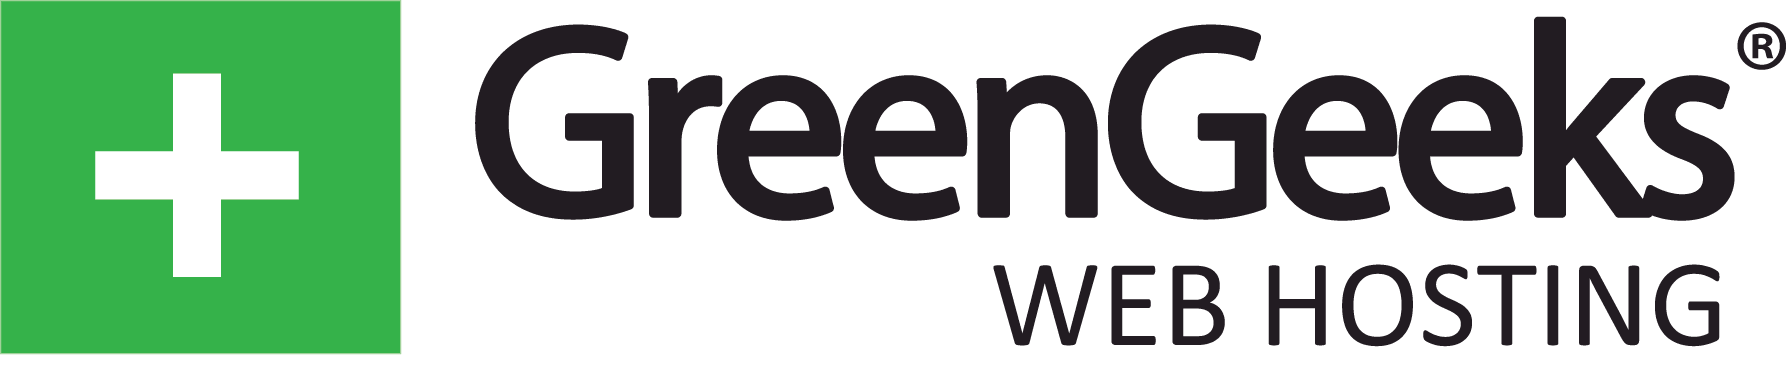 Greengeeks New Year 2021 Offer Big 75% Off – Click Here to Claim